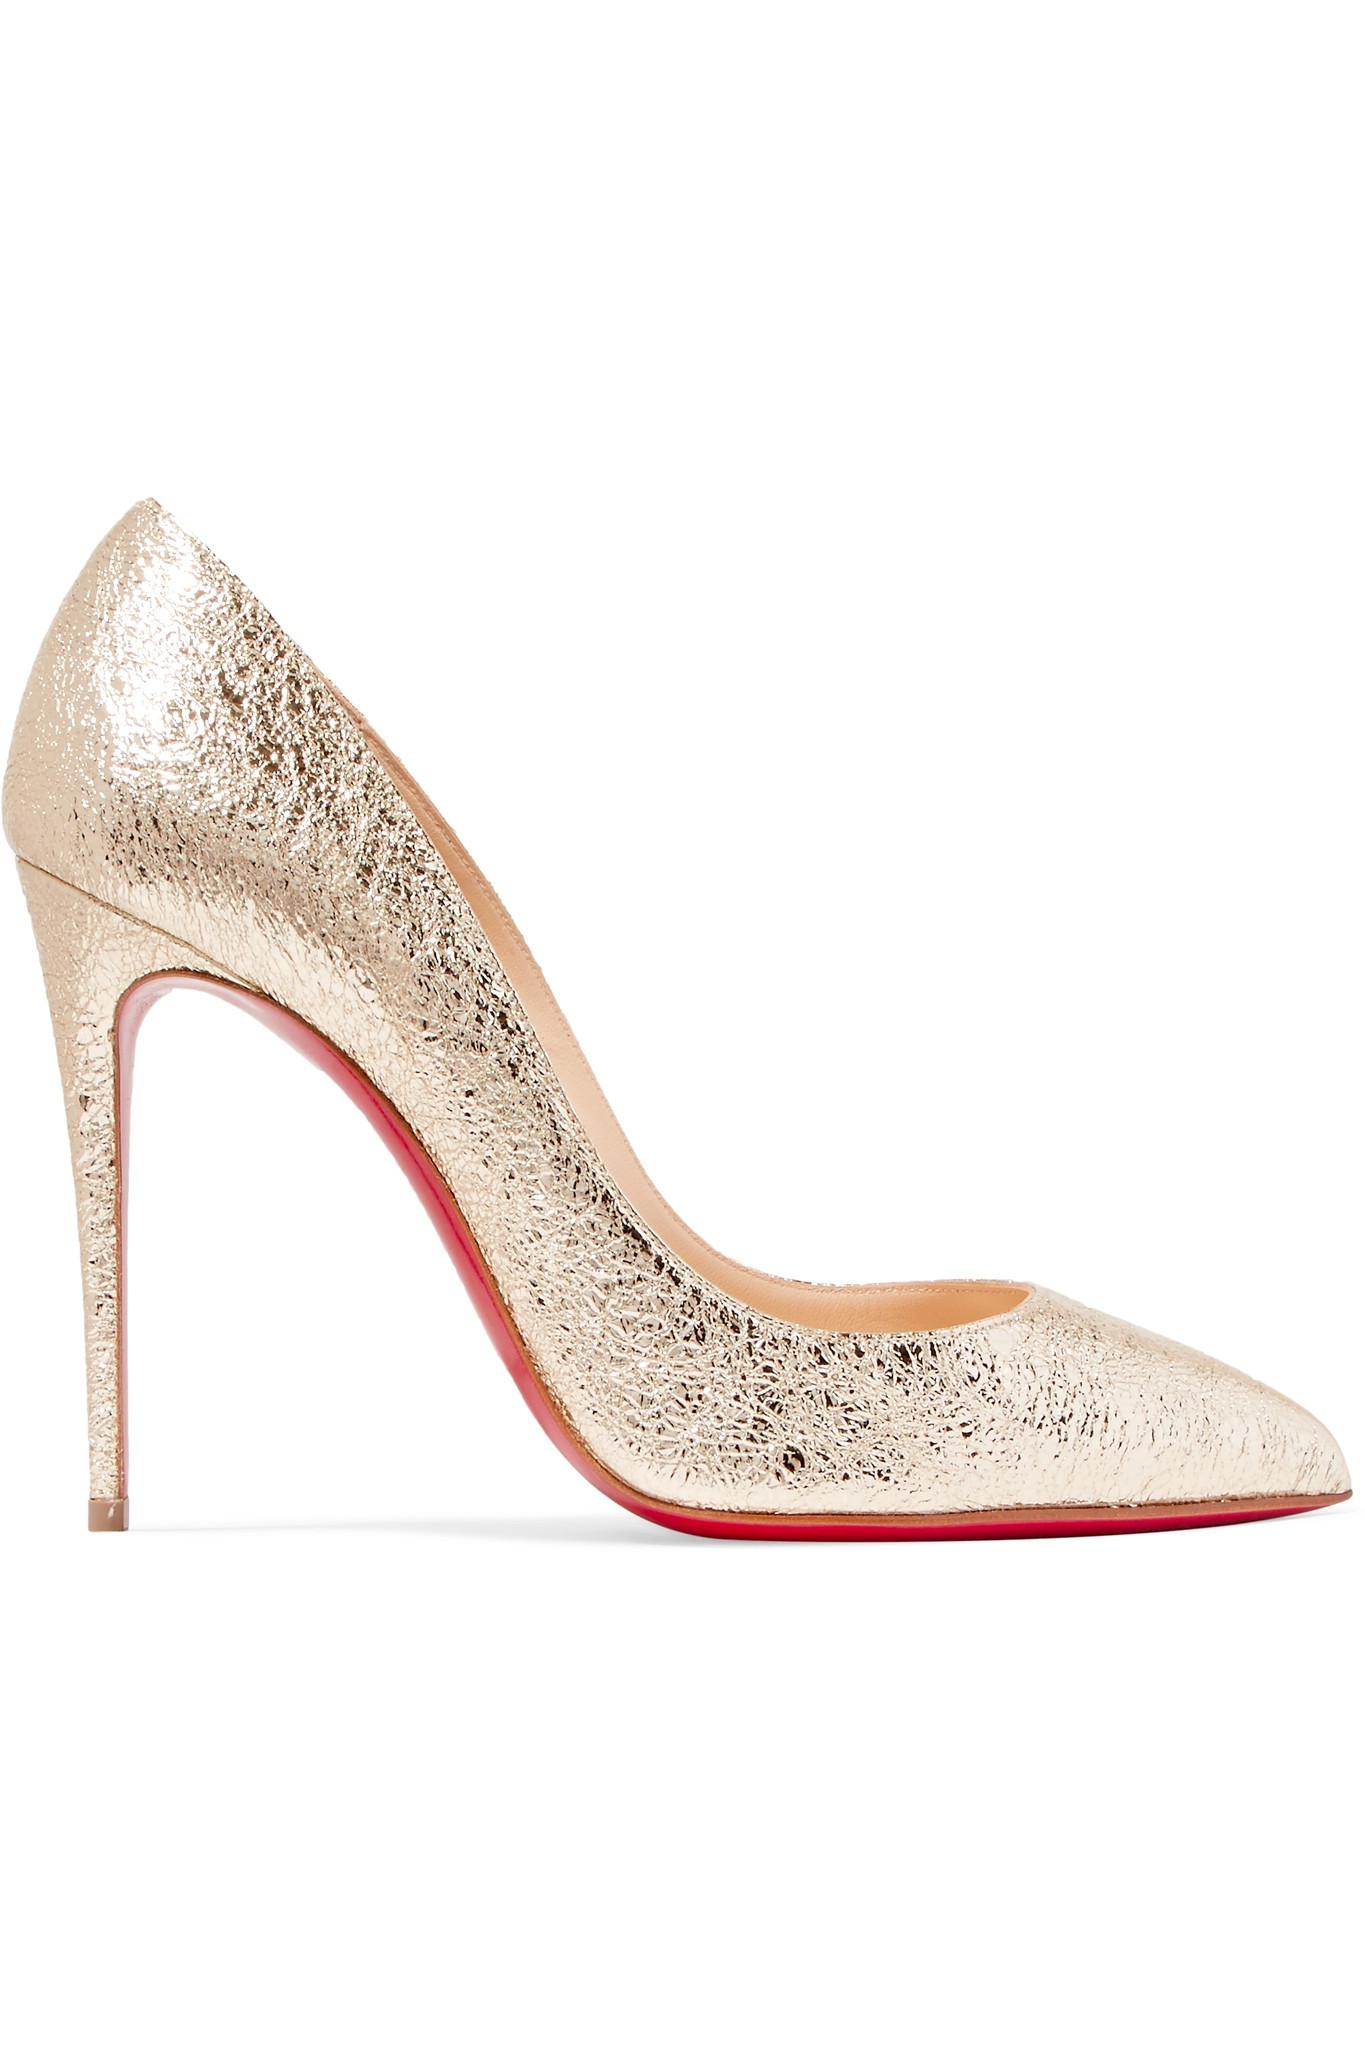 c38337ecfbb7 Christian Louboutin. Women s Pigalle Follies 100 Metallic Crinkled-leather  Court Shoes